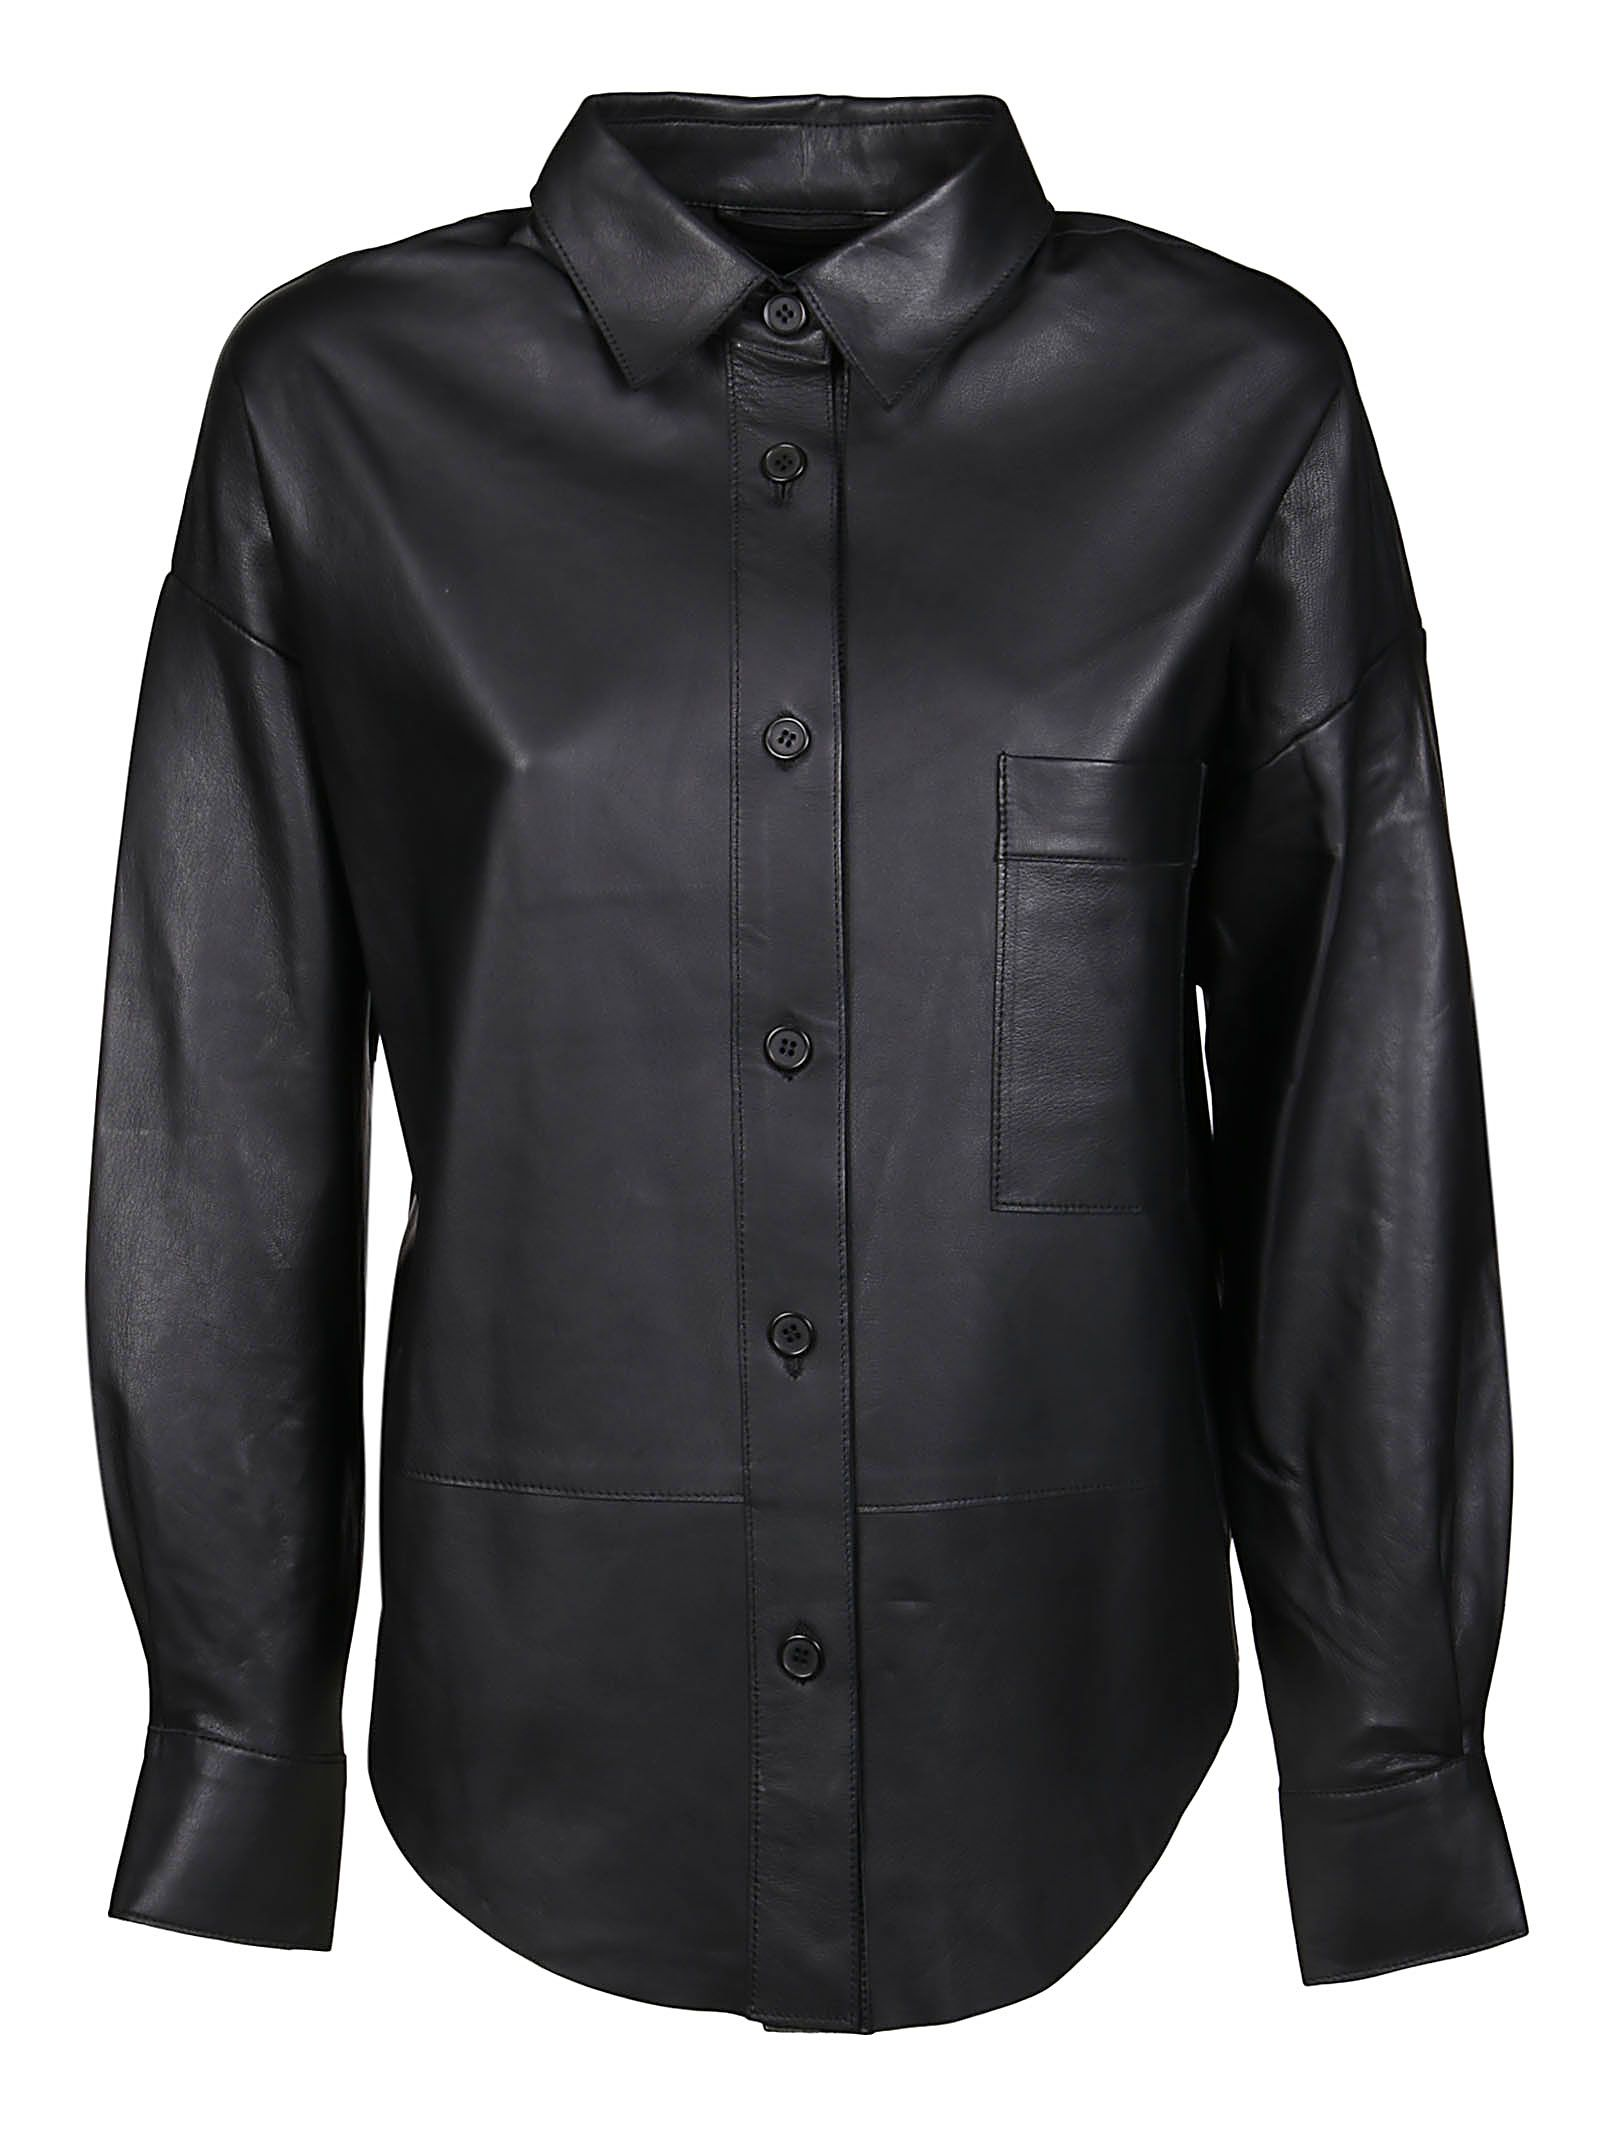 Sword 6.6.44 Shirts S.W.O.R.D 6.6.44 WOMEN'S BLACK OTHER MATERIALS OUTERWEAR JACKET